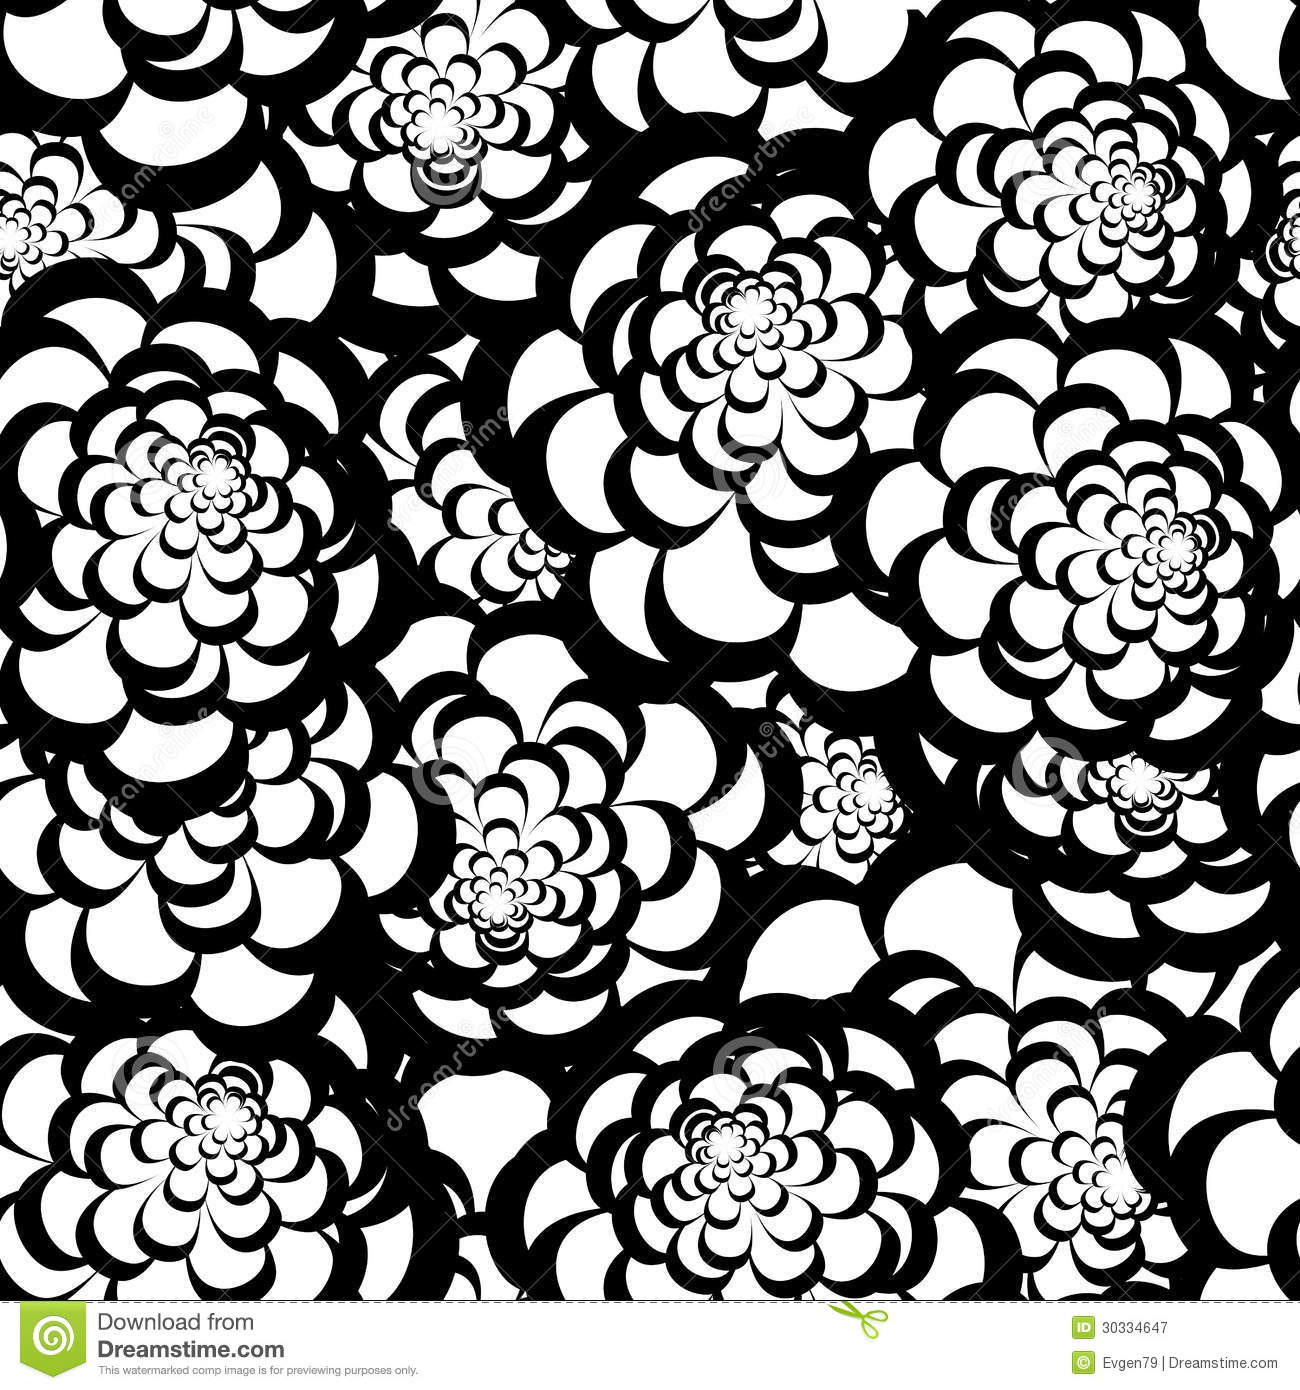 Dark Floral Ii Black Saturated Xl Wallpaper: Seamless Monochrome Floral Pattern Royalty Free Stock